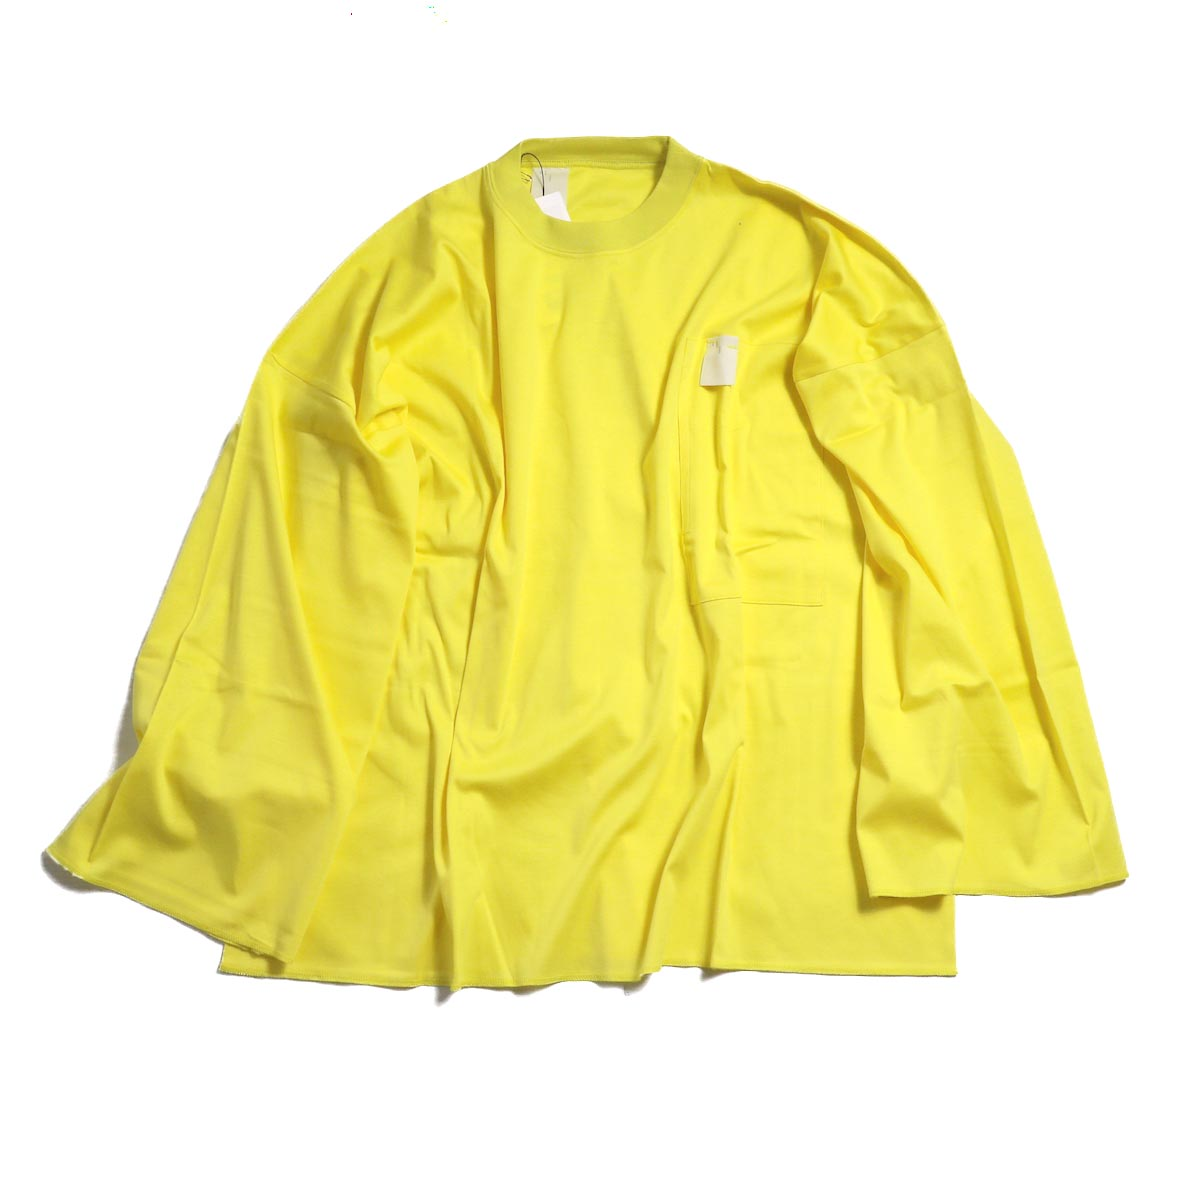 N.HOOLYWOOD  /  182-CS20-048 pieces LONG SLEEVE Tee -YELLOW